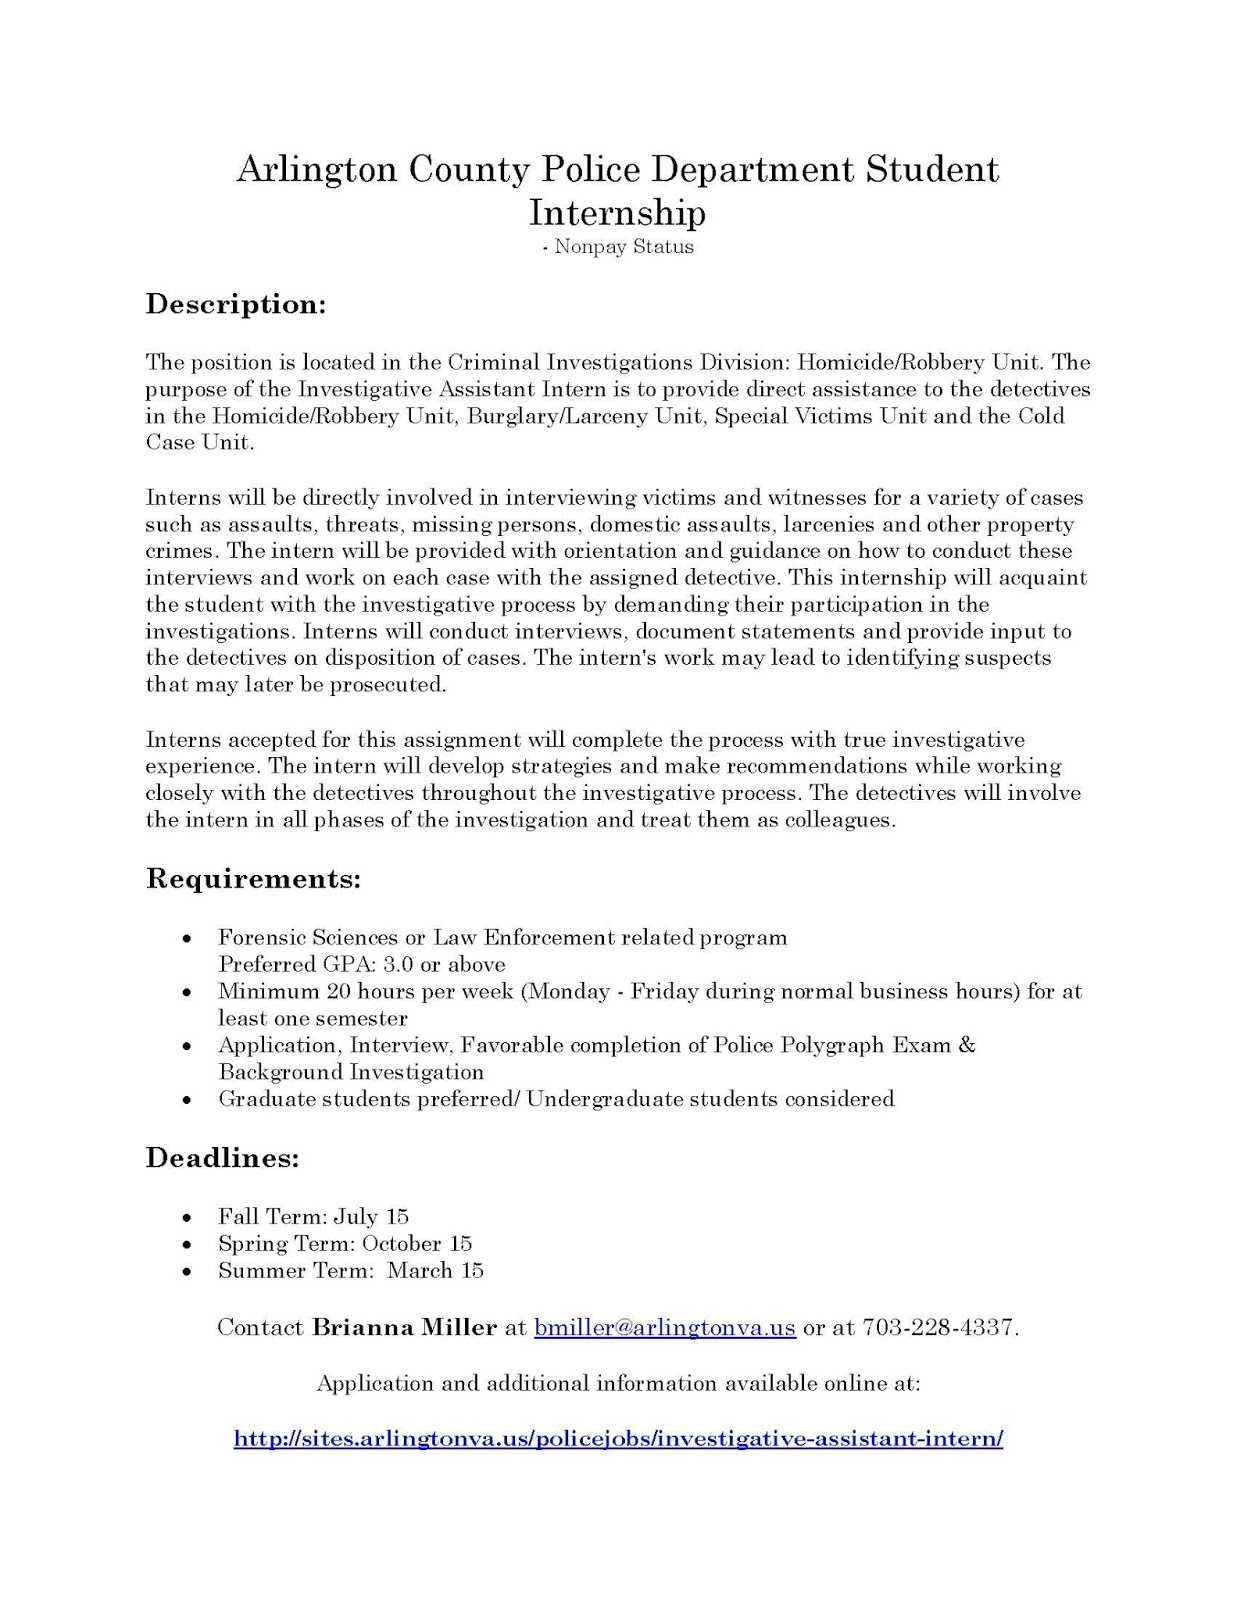 police department internship essay Internship with the police department throughout my one hundred and twenty- hour experience with the gloversville police department, i learned many skills,.